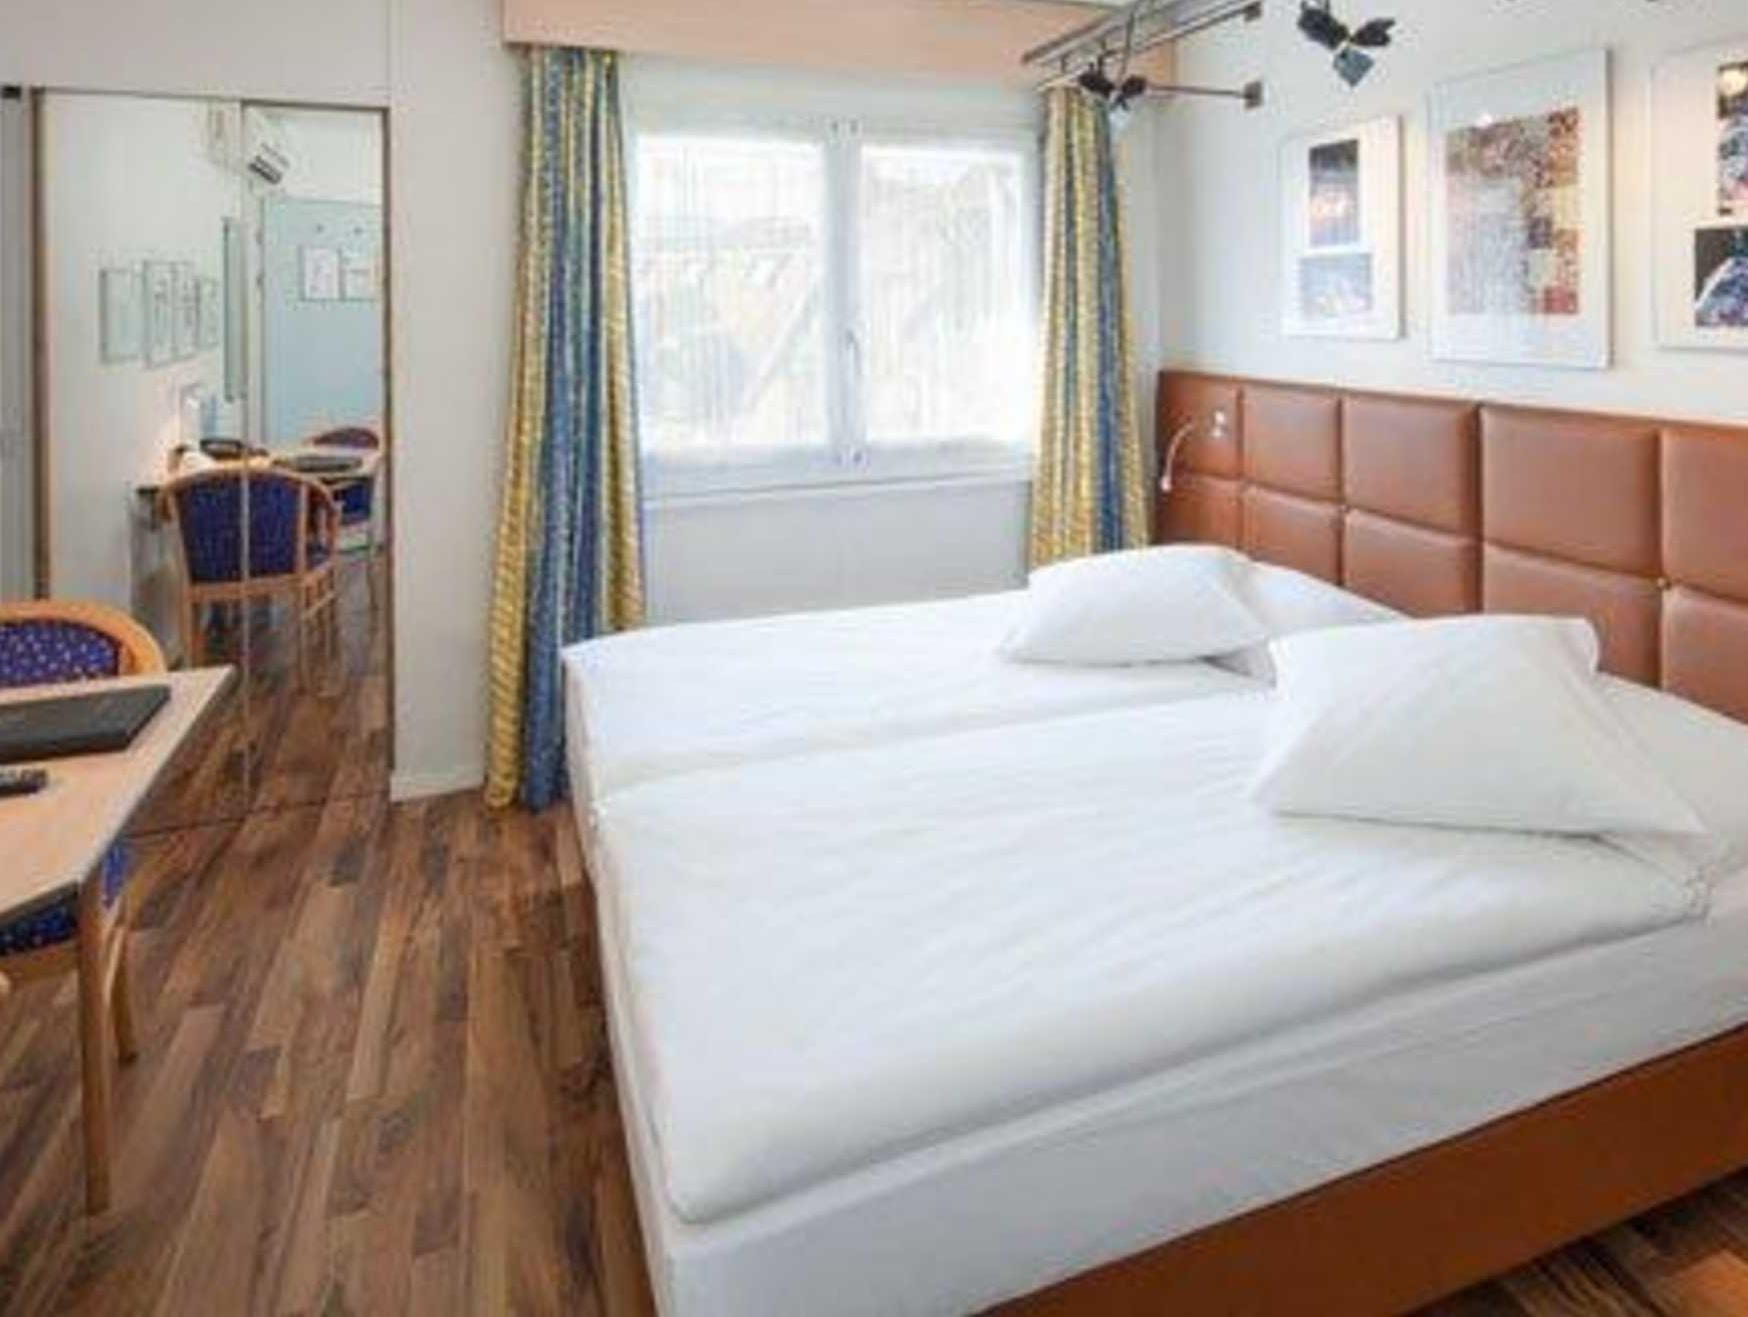 Standard Room with 2 single beds